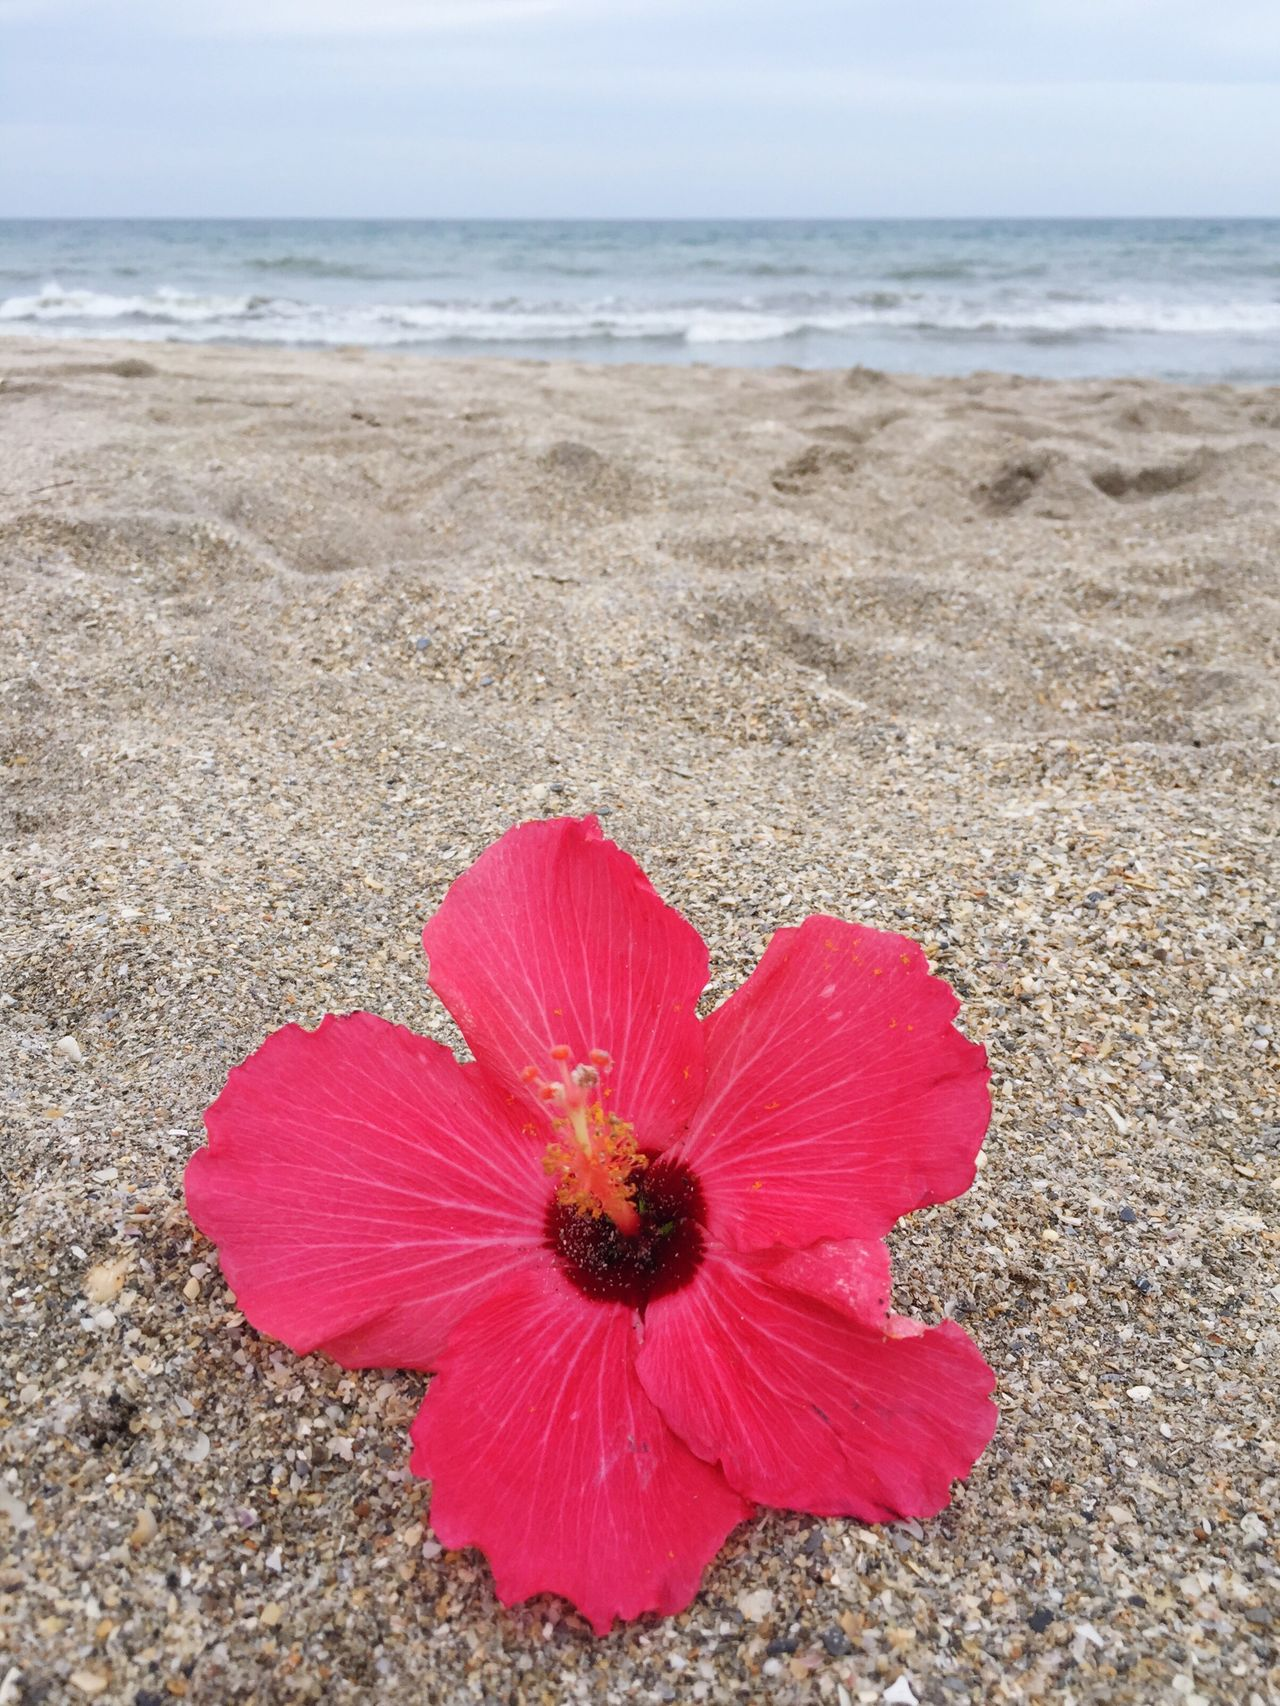 Beach Nature Sea Beauty In Nature Sand Water Horizon Over Water Outdoors Day No People Tranquility Scenics Flower Pink Color Sky Close-up Flower Head Freshness Hibiscus Beachphotography Beach Photography Beach Life Sand & Sea